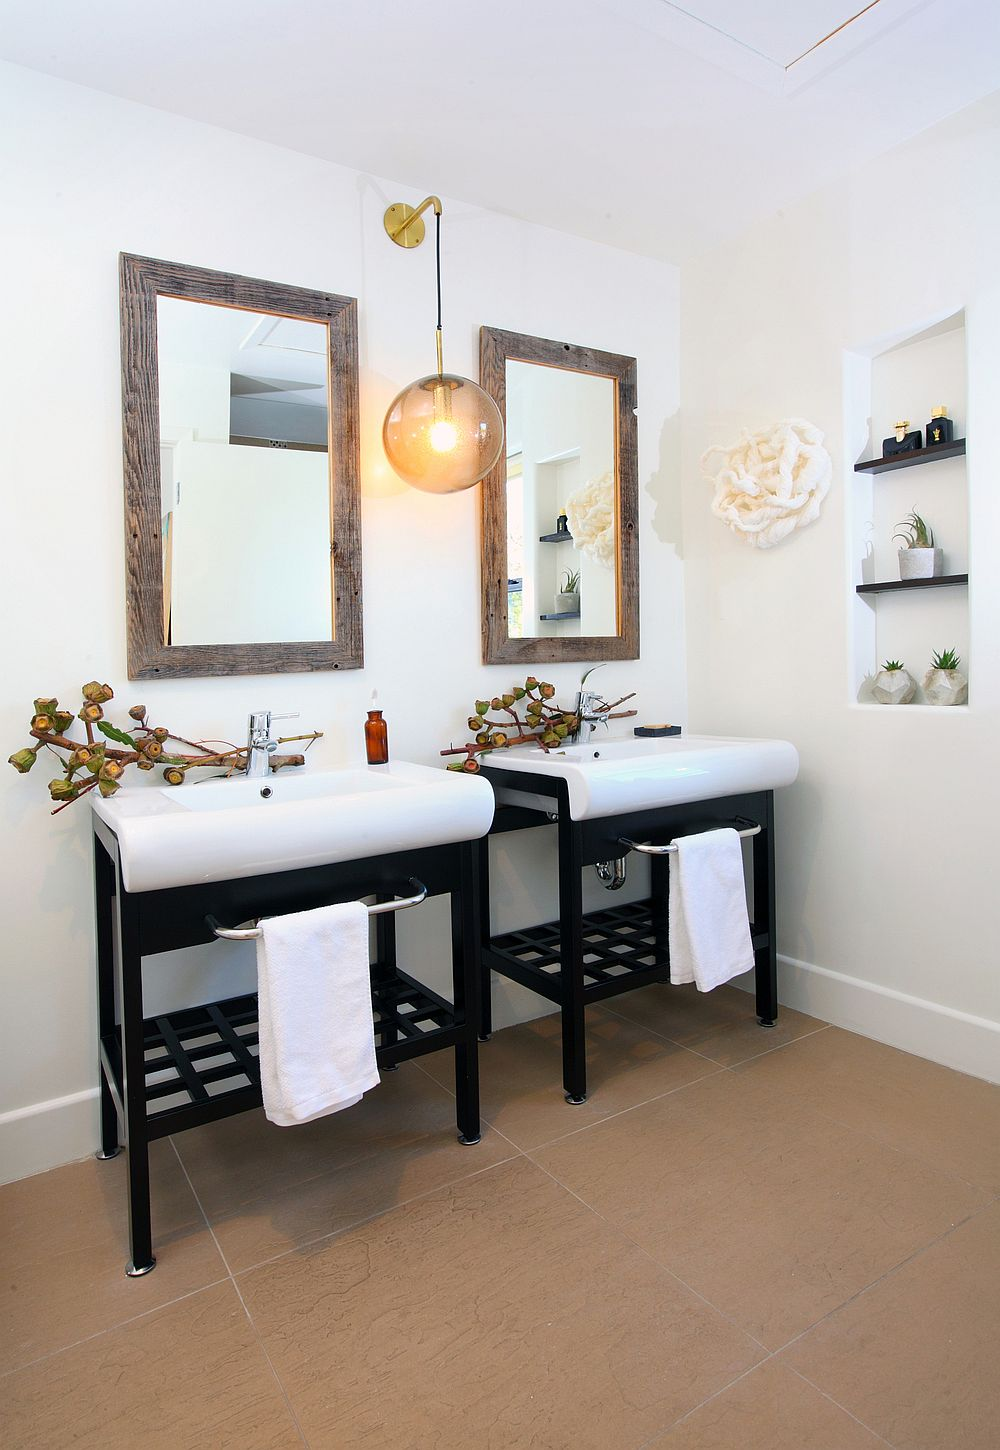 Recycled twin vanities in the bathroom coupled with vintage Danish pendant light